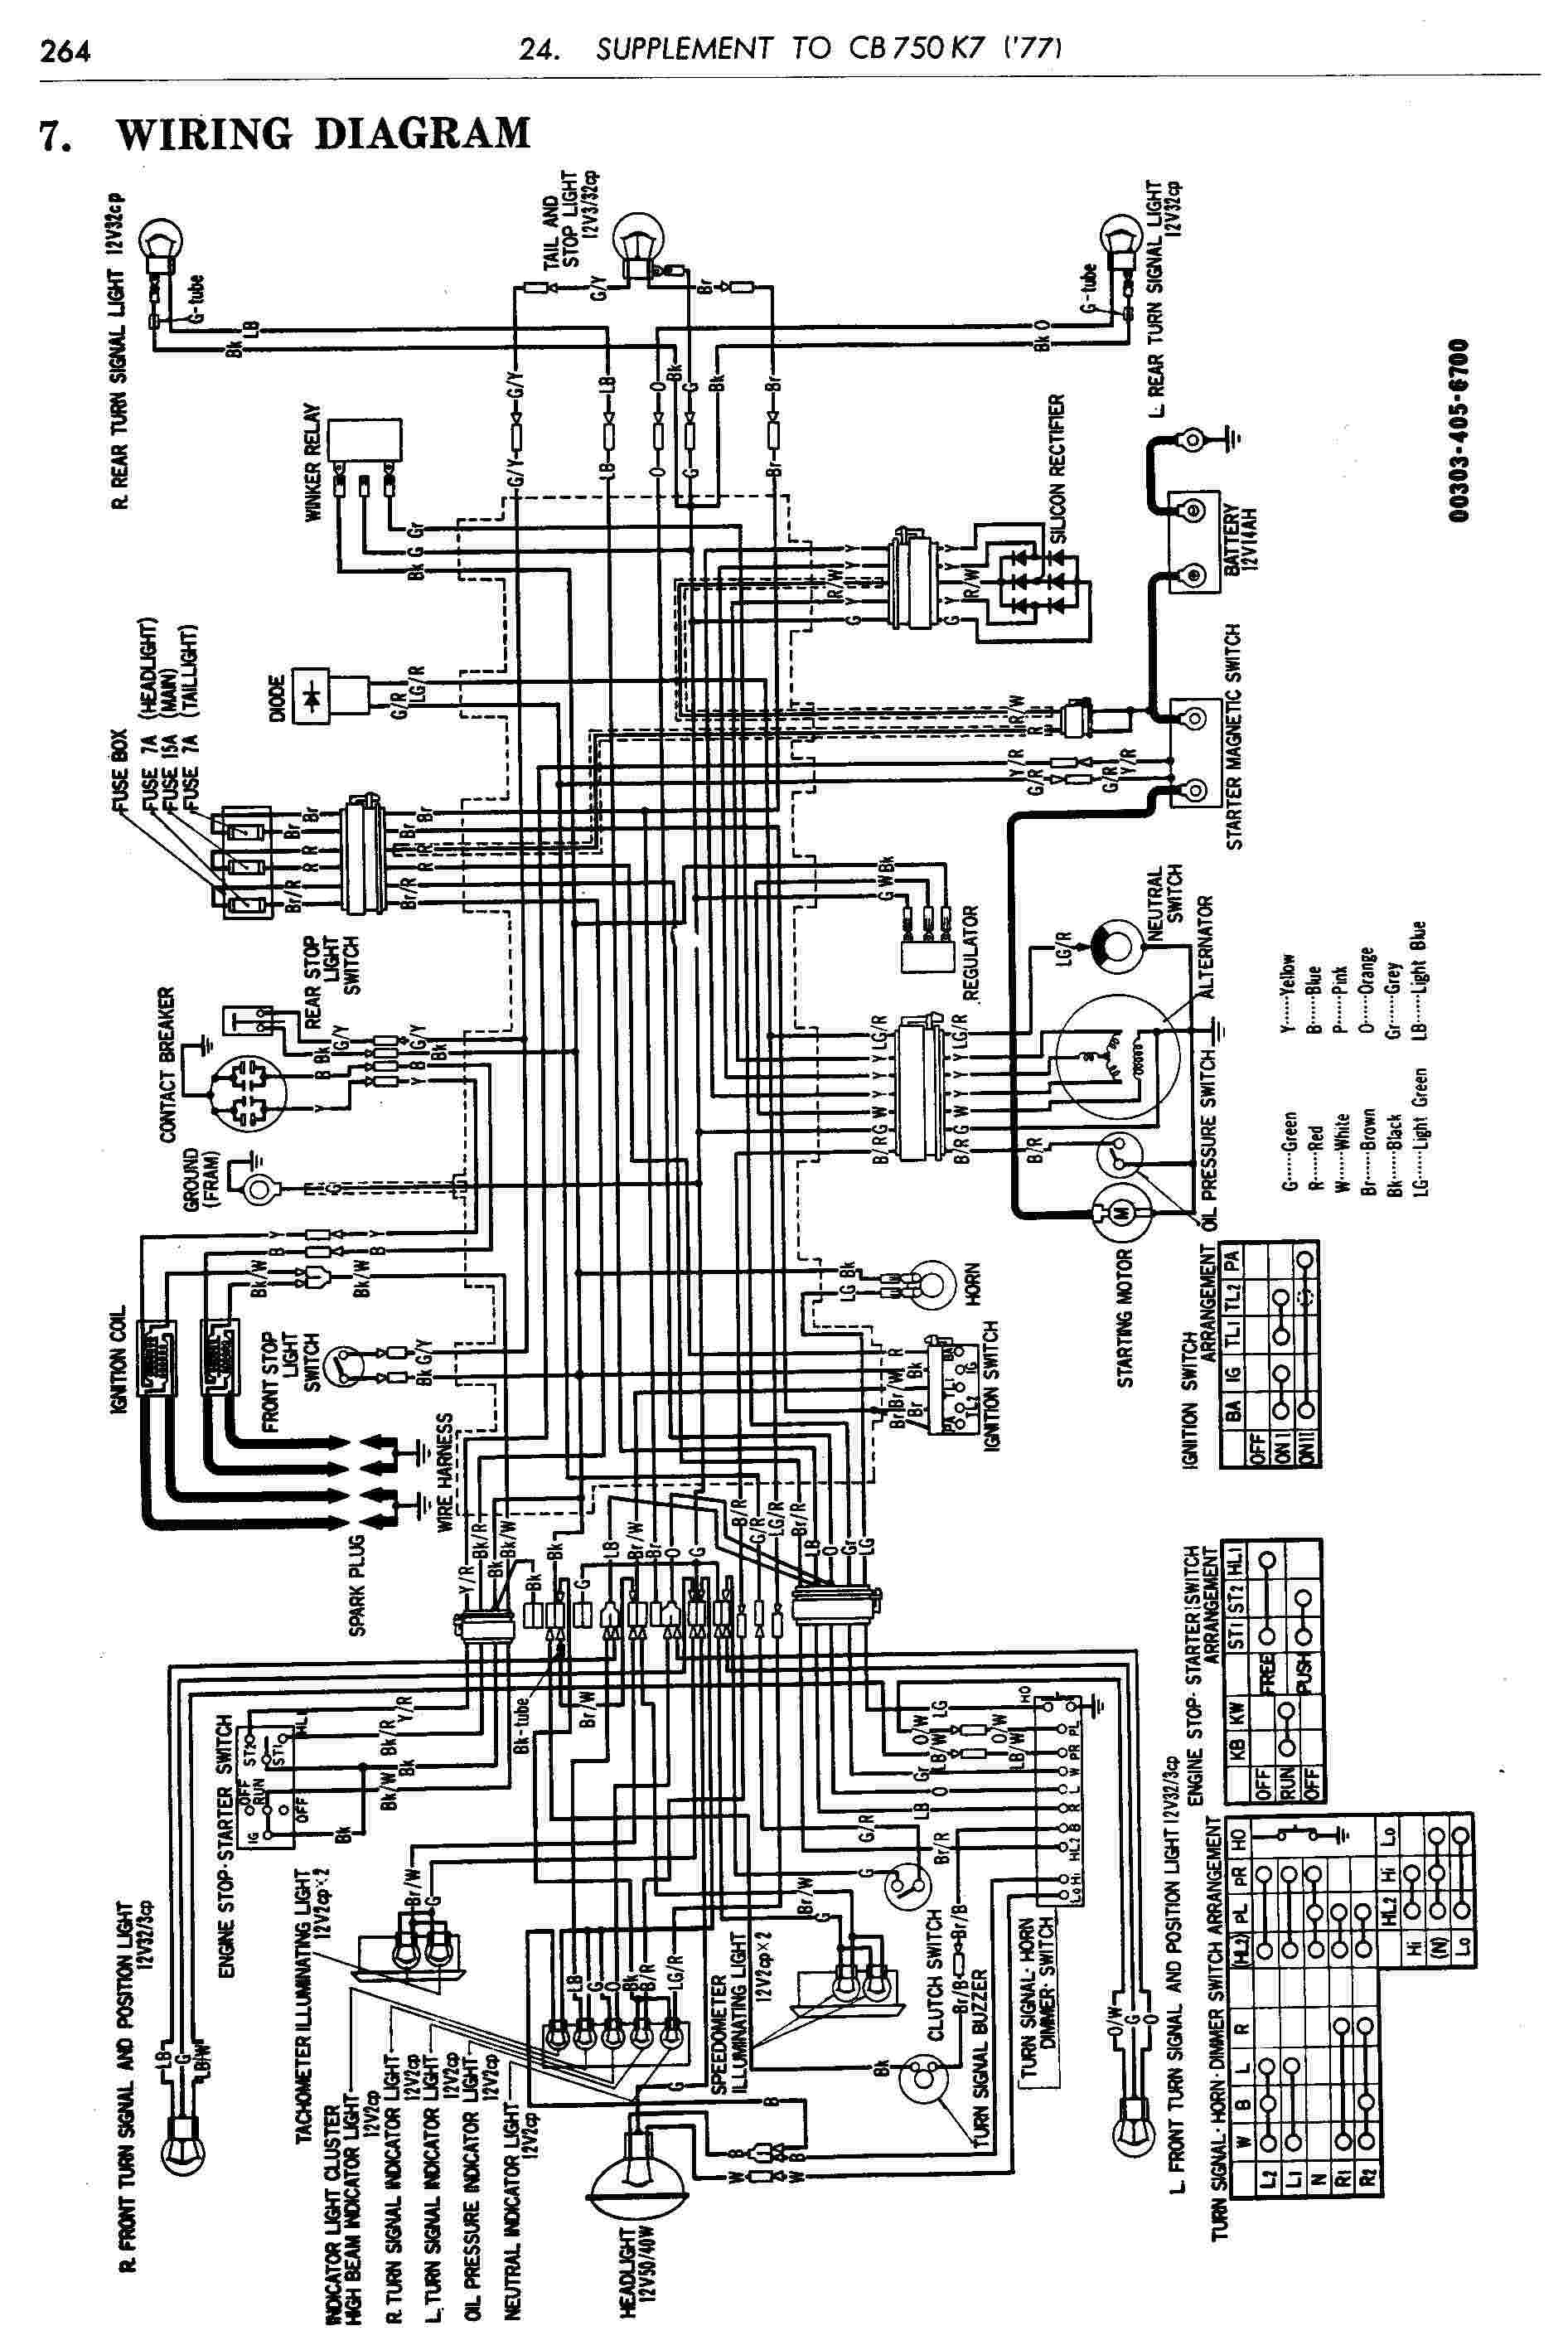 wiringK7 honda cb750k2 wiring diagram for a 1979 honda cb750f at soozxer.org